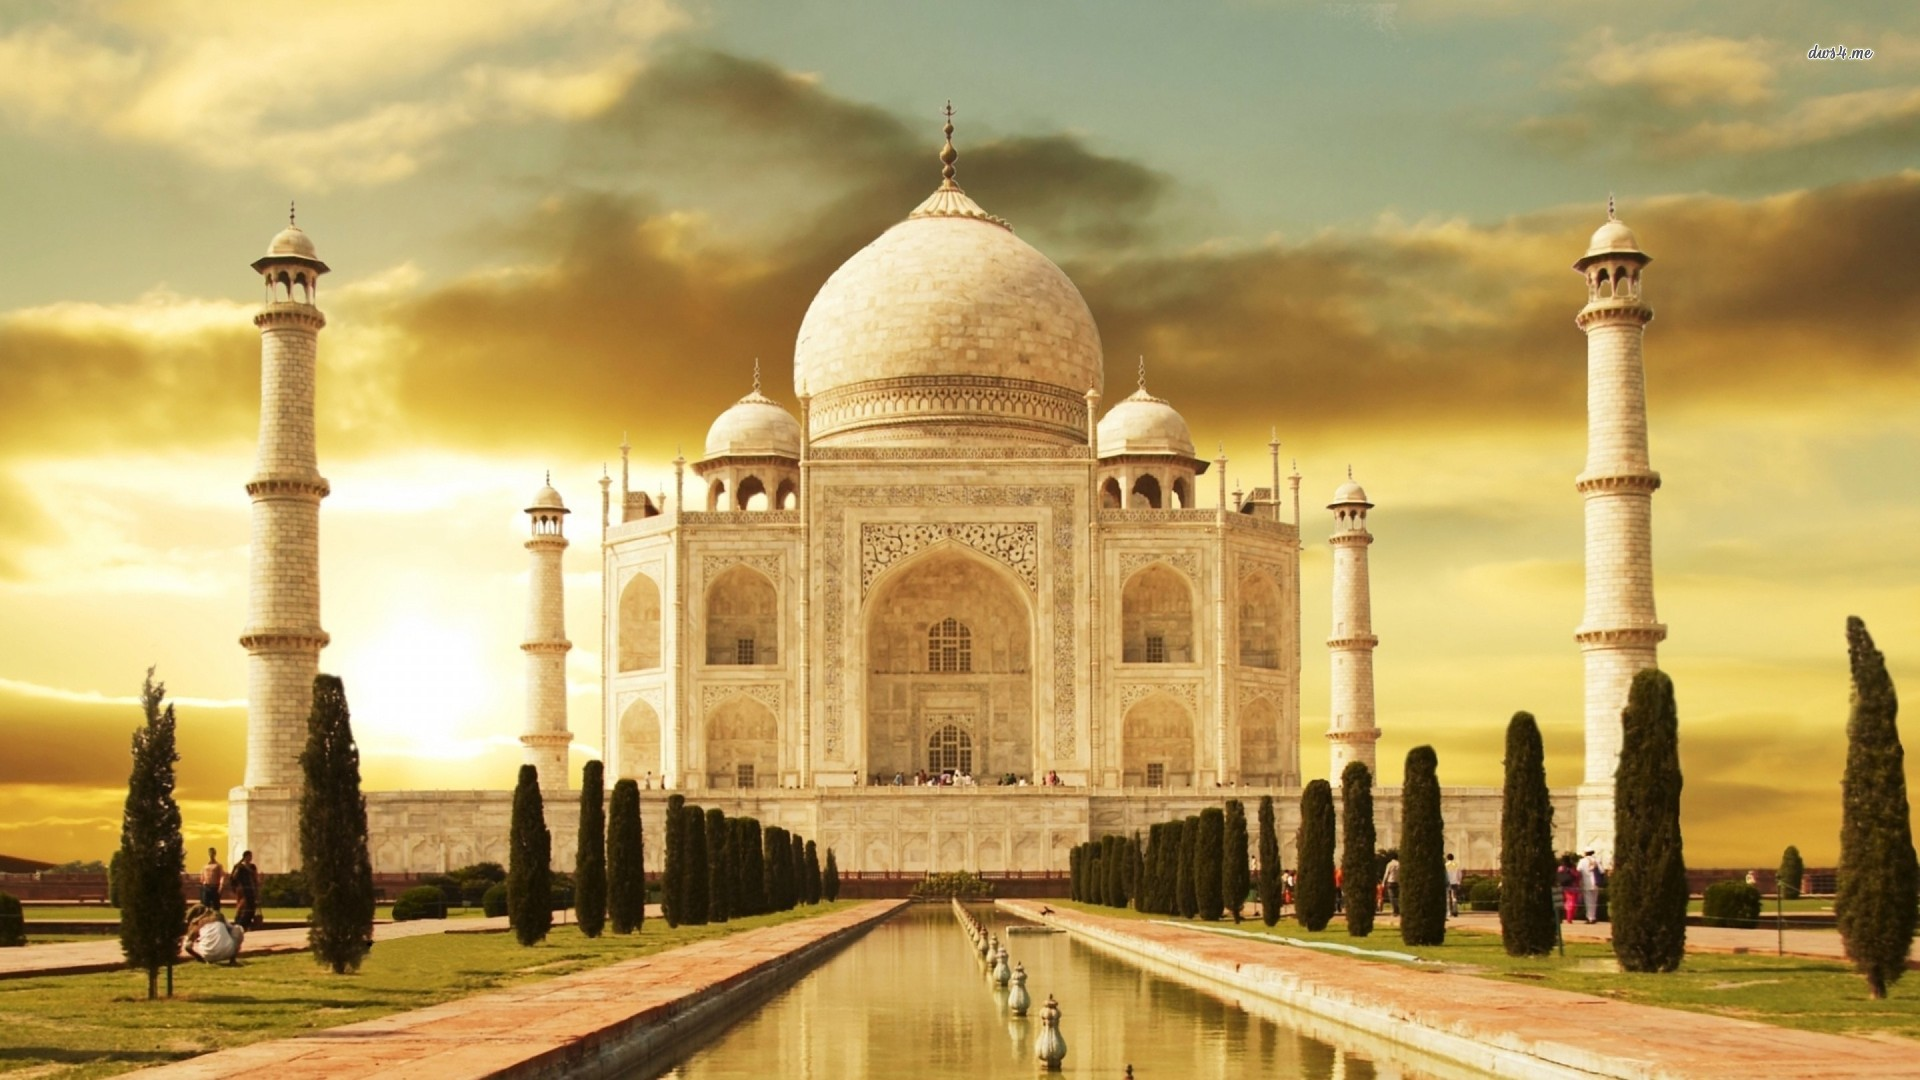 taj-mahal-at-night-wallpaper-3d-wallpaper-4